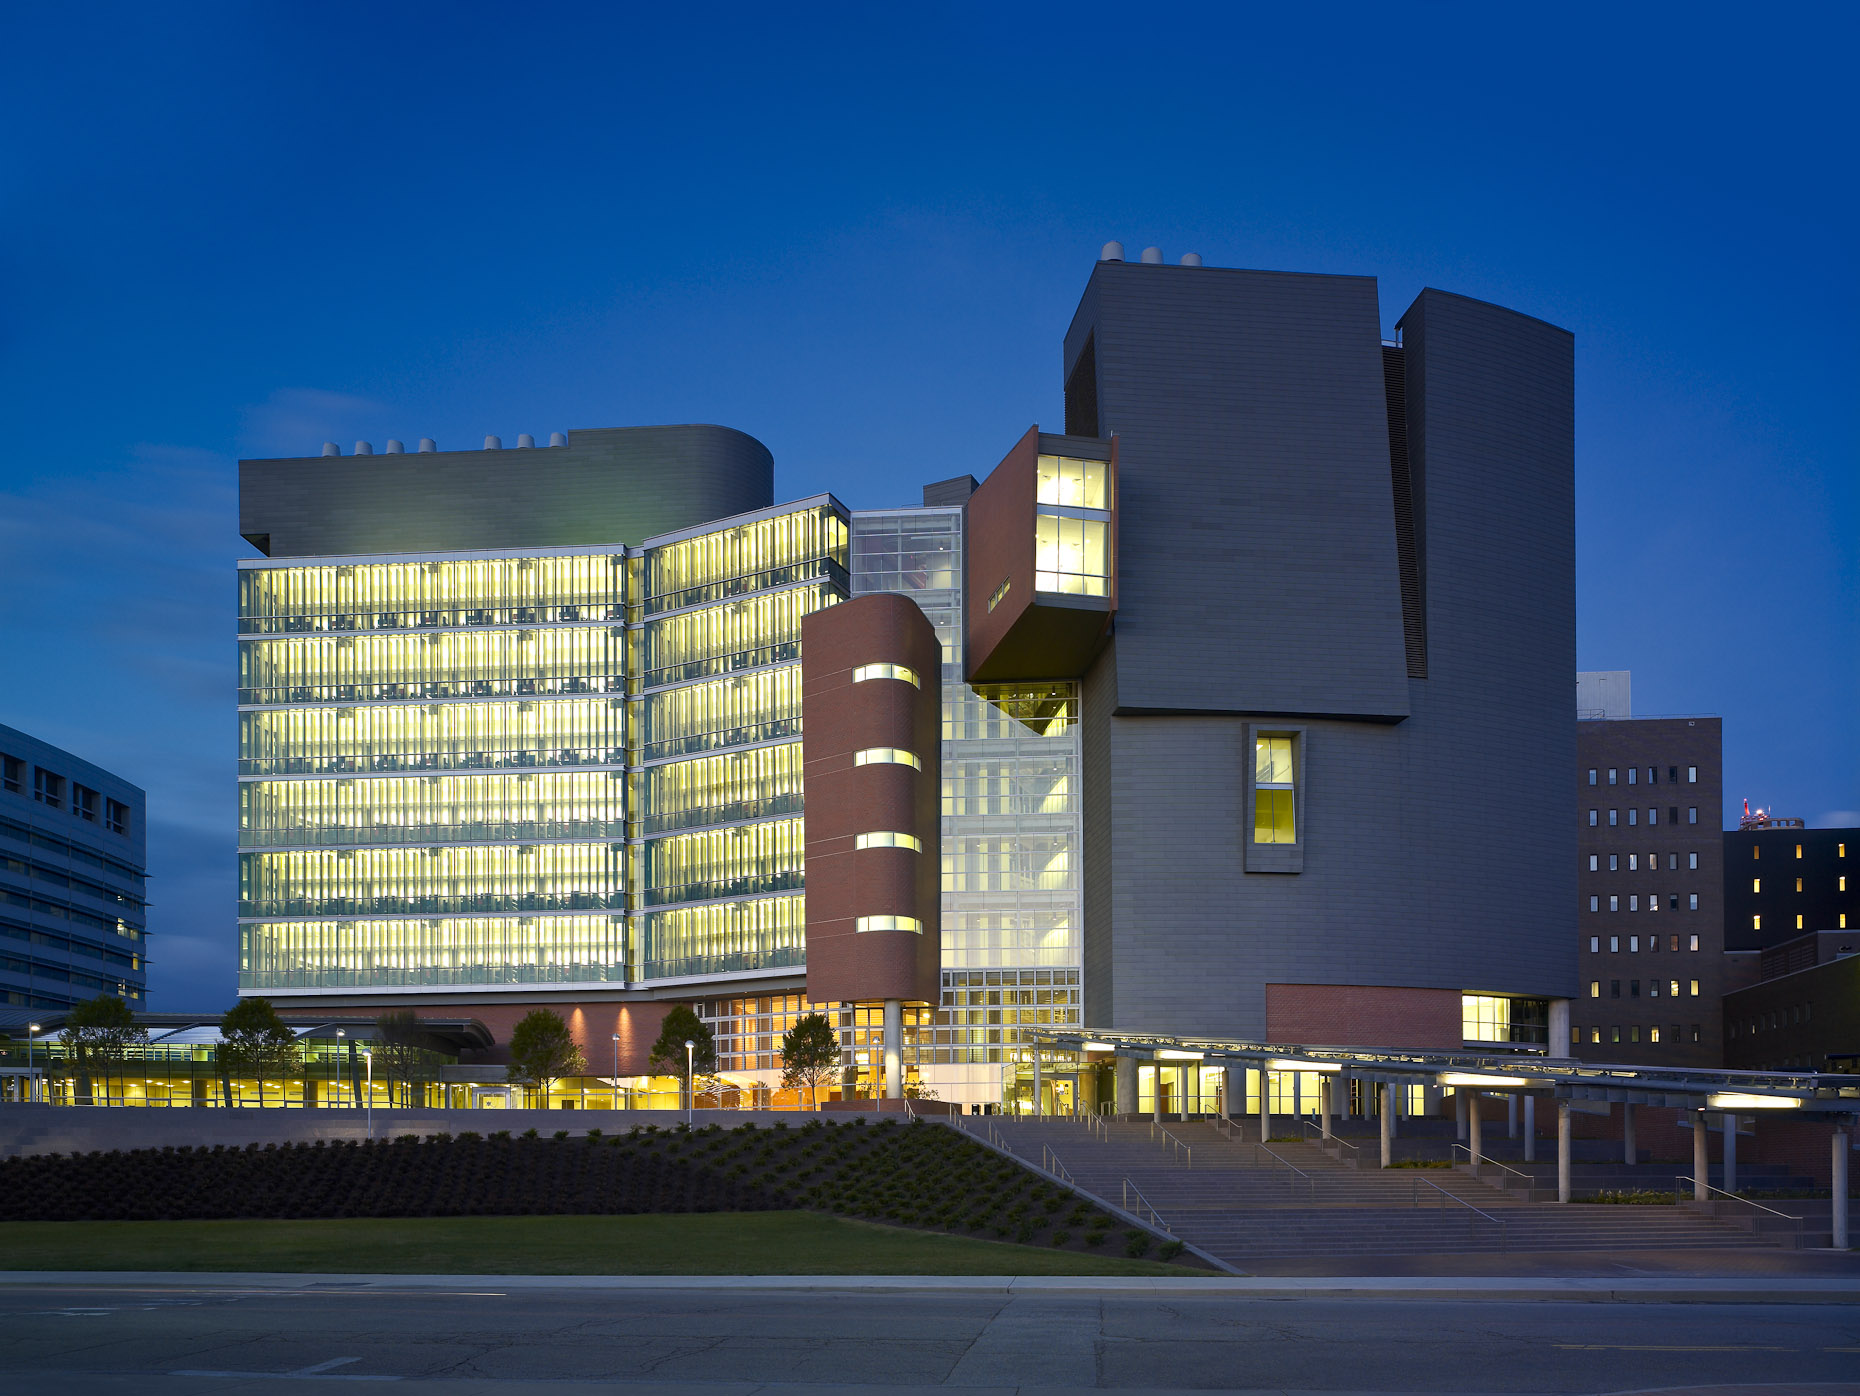 C.A.R.E. / Crowley Building at the University of Cincinnati Medical Center by Studios Architecture